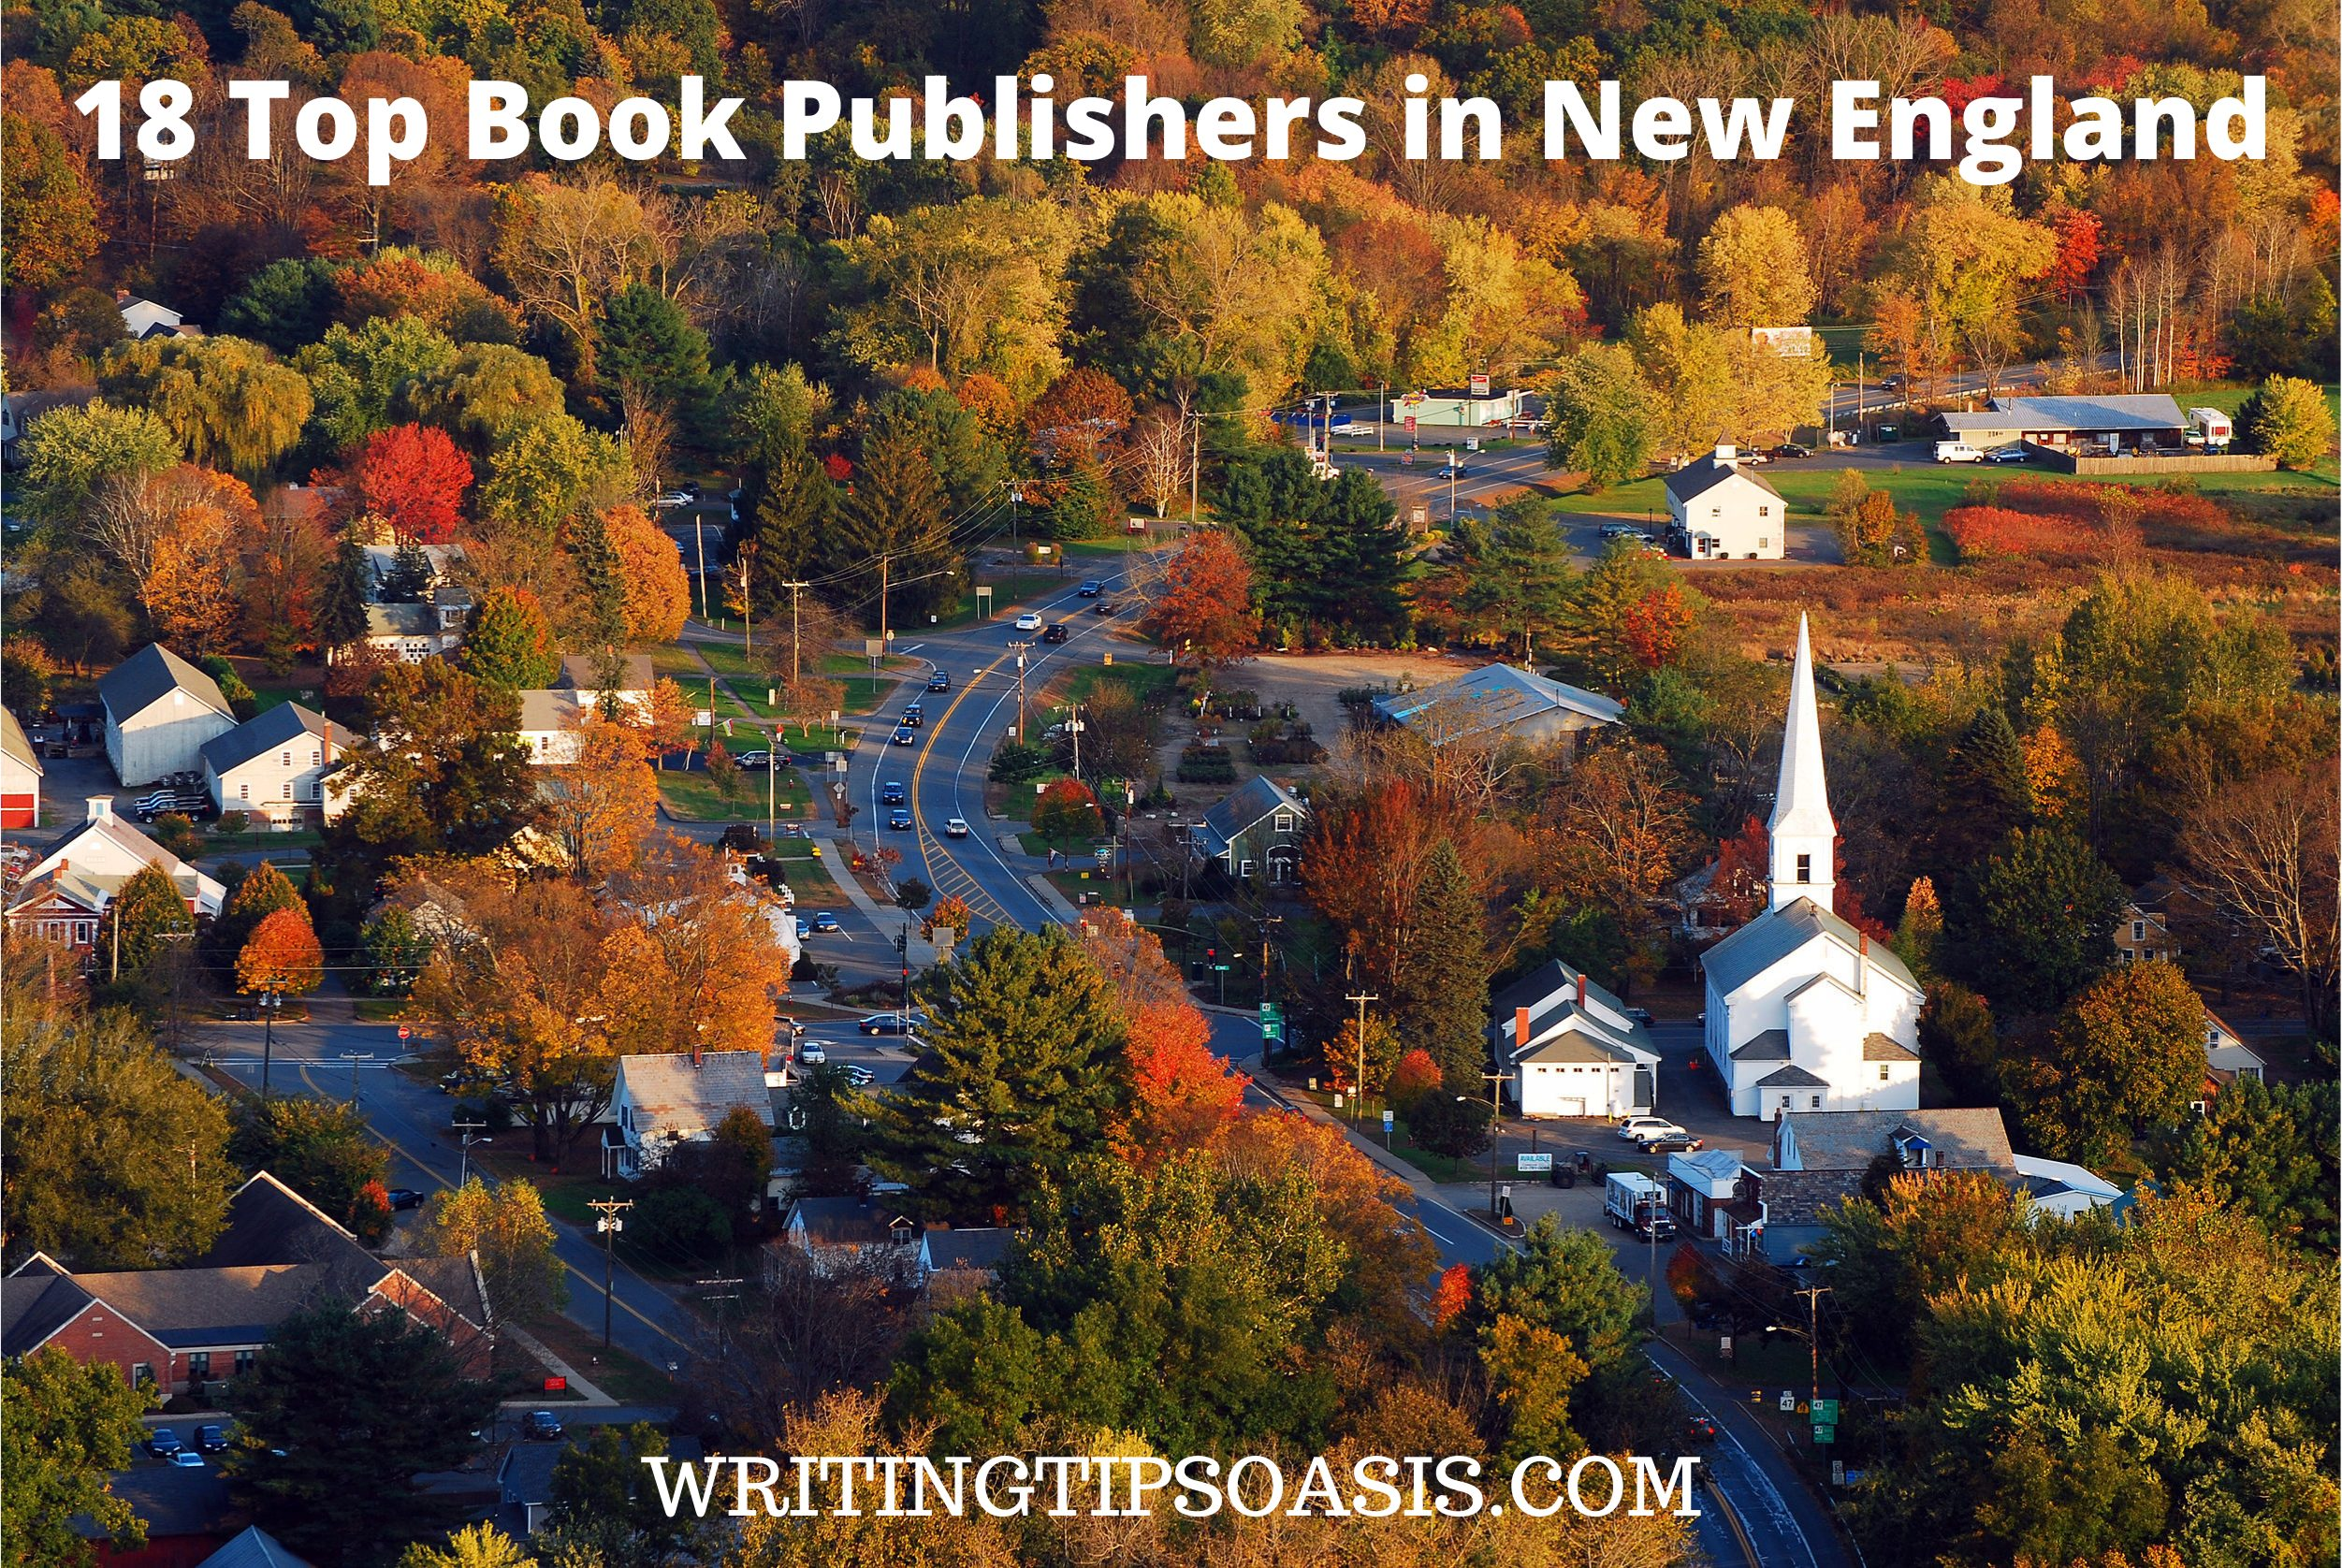 Book Publishers in New England